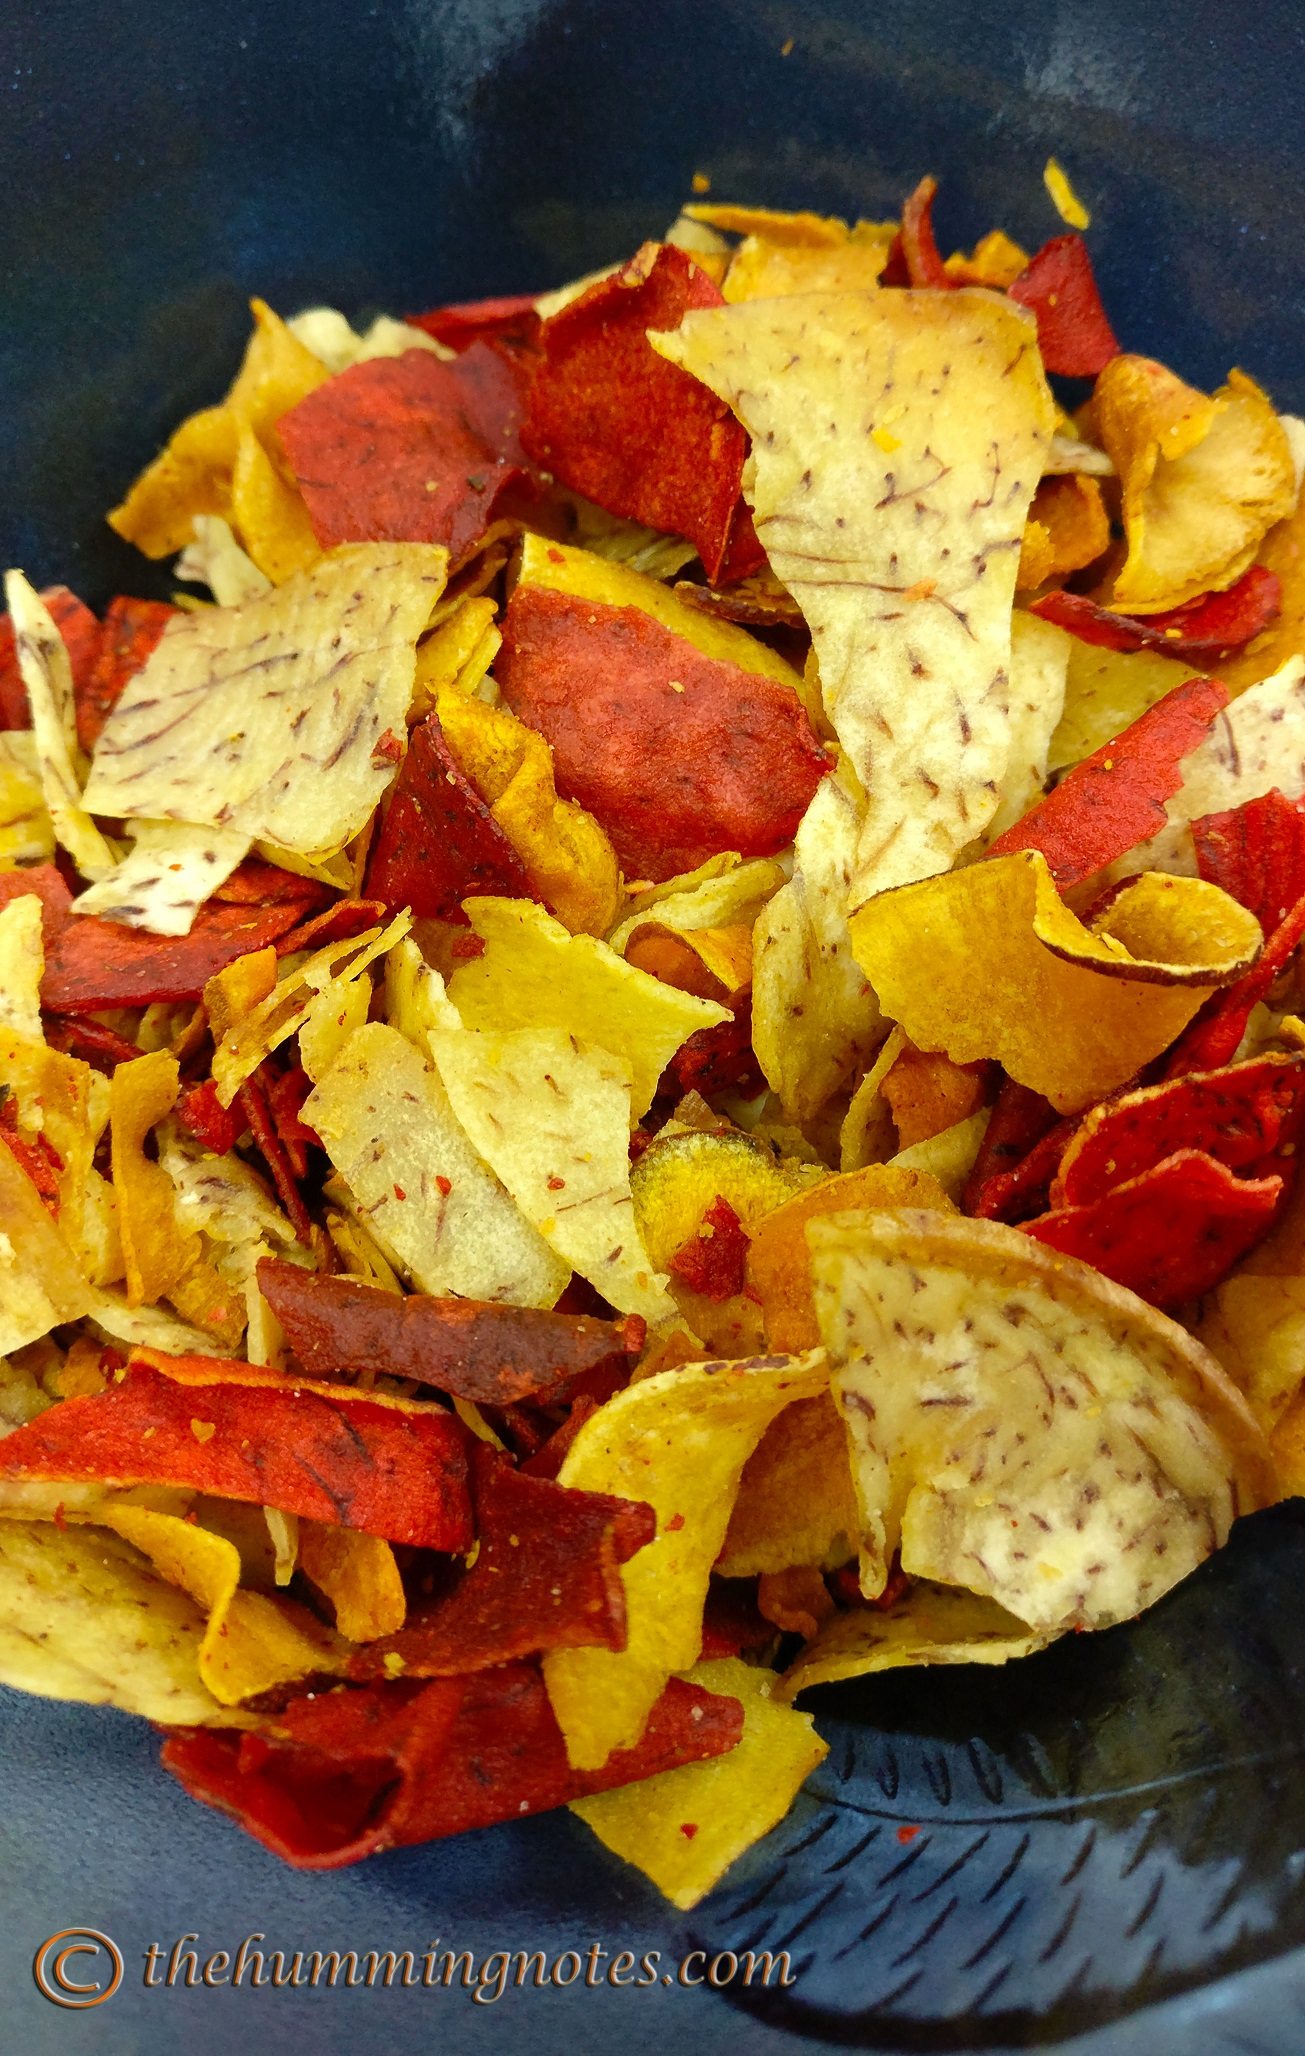 The Original Vegetable Terra Chips